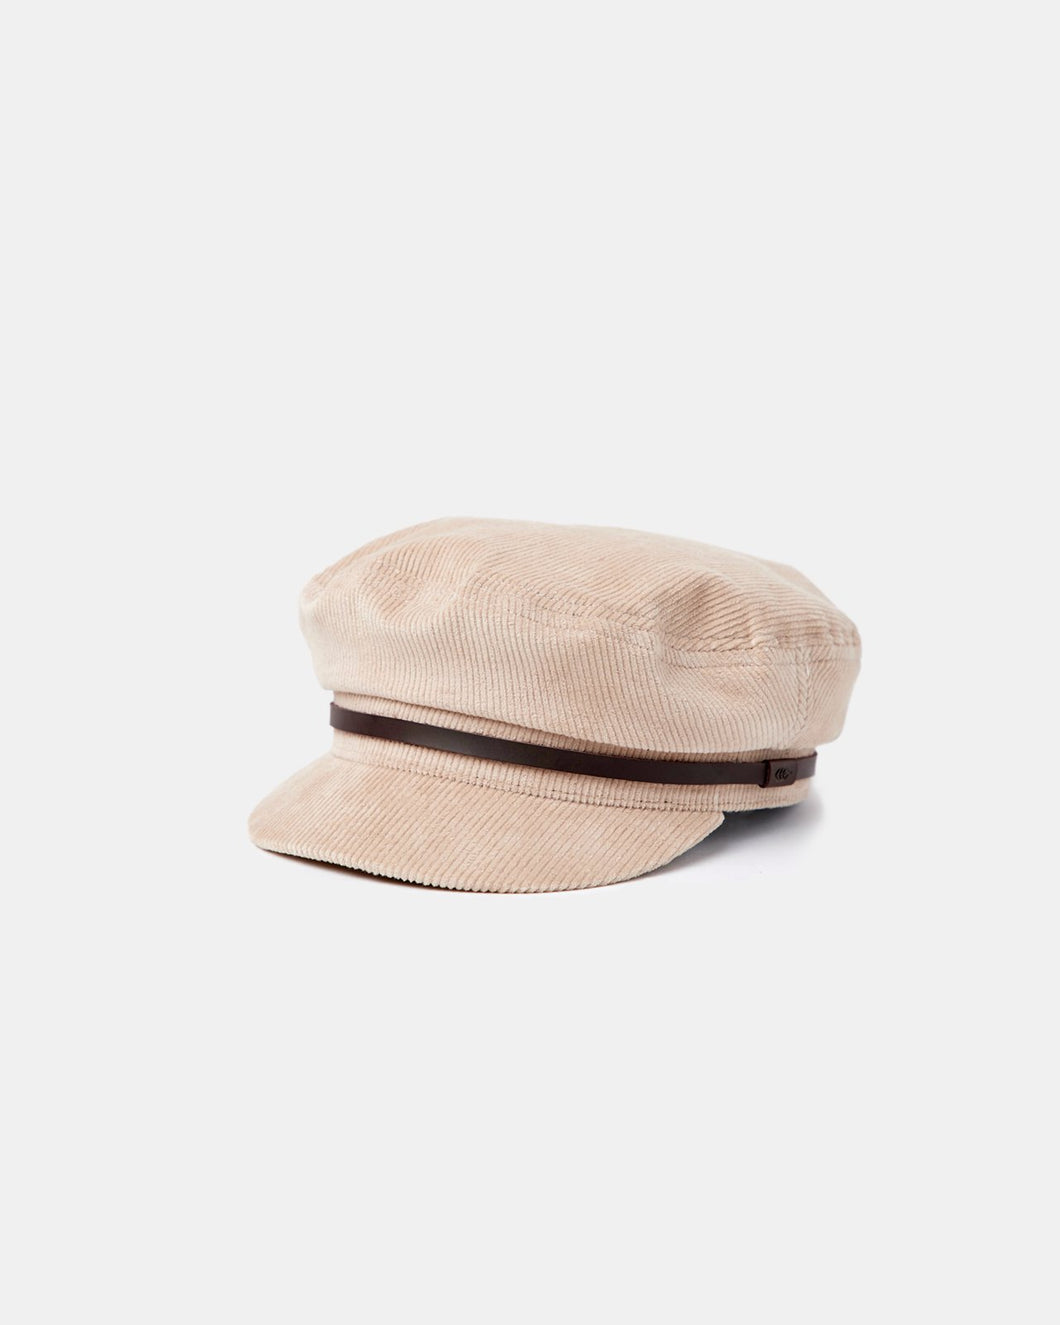 RESTOCKED - Will and Bear - Baker Cap - Fawn - Folkstore Fitzroy